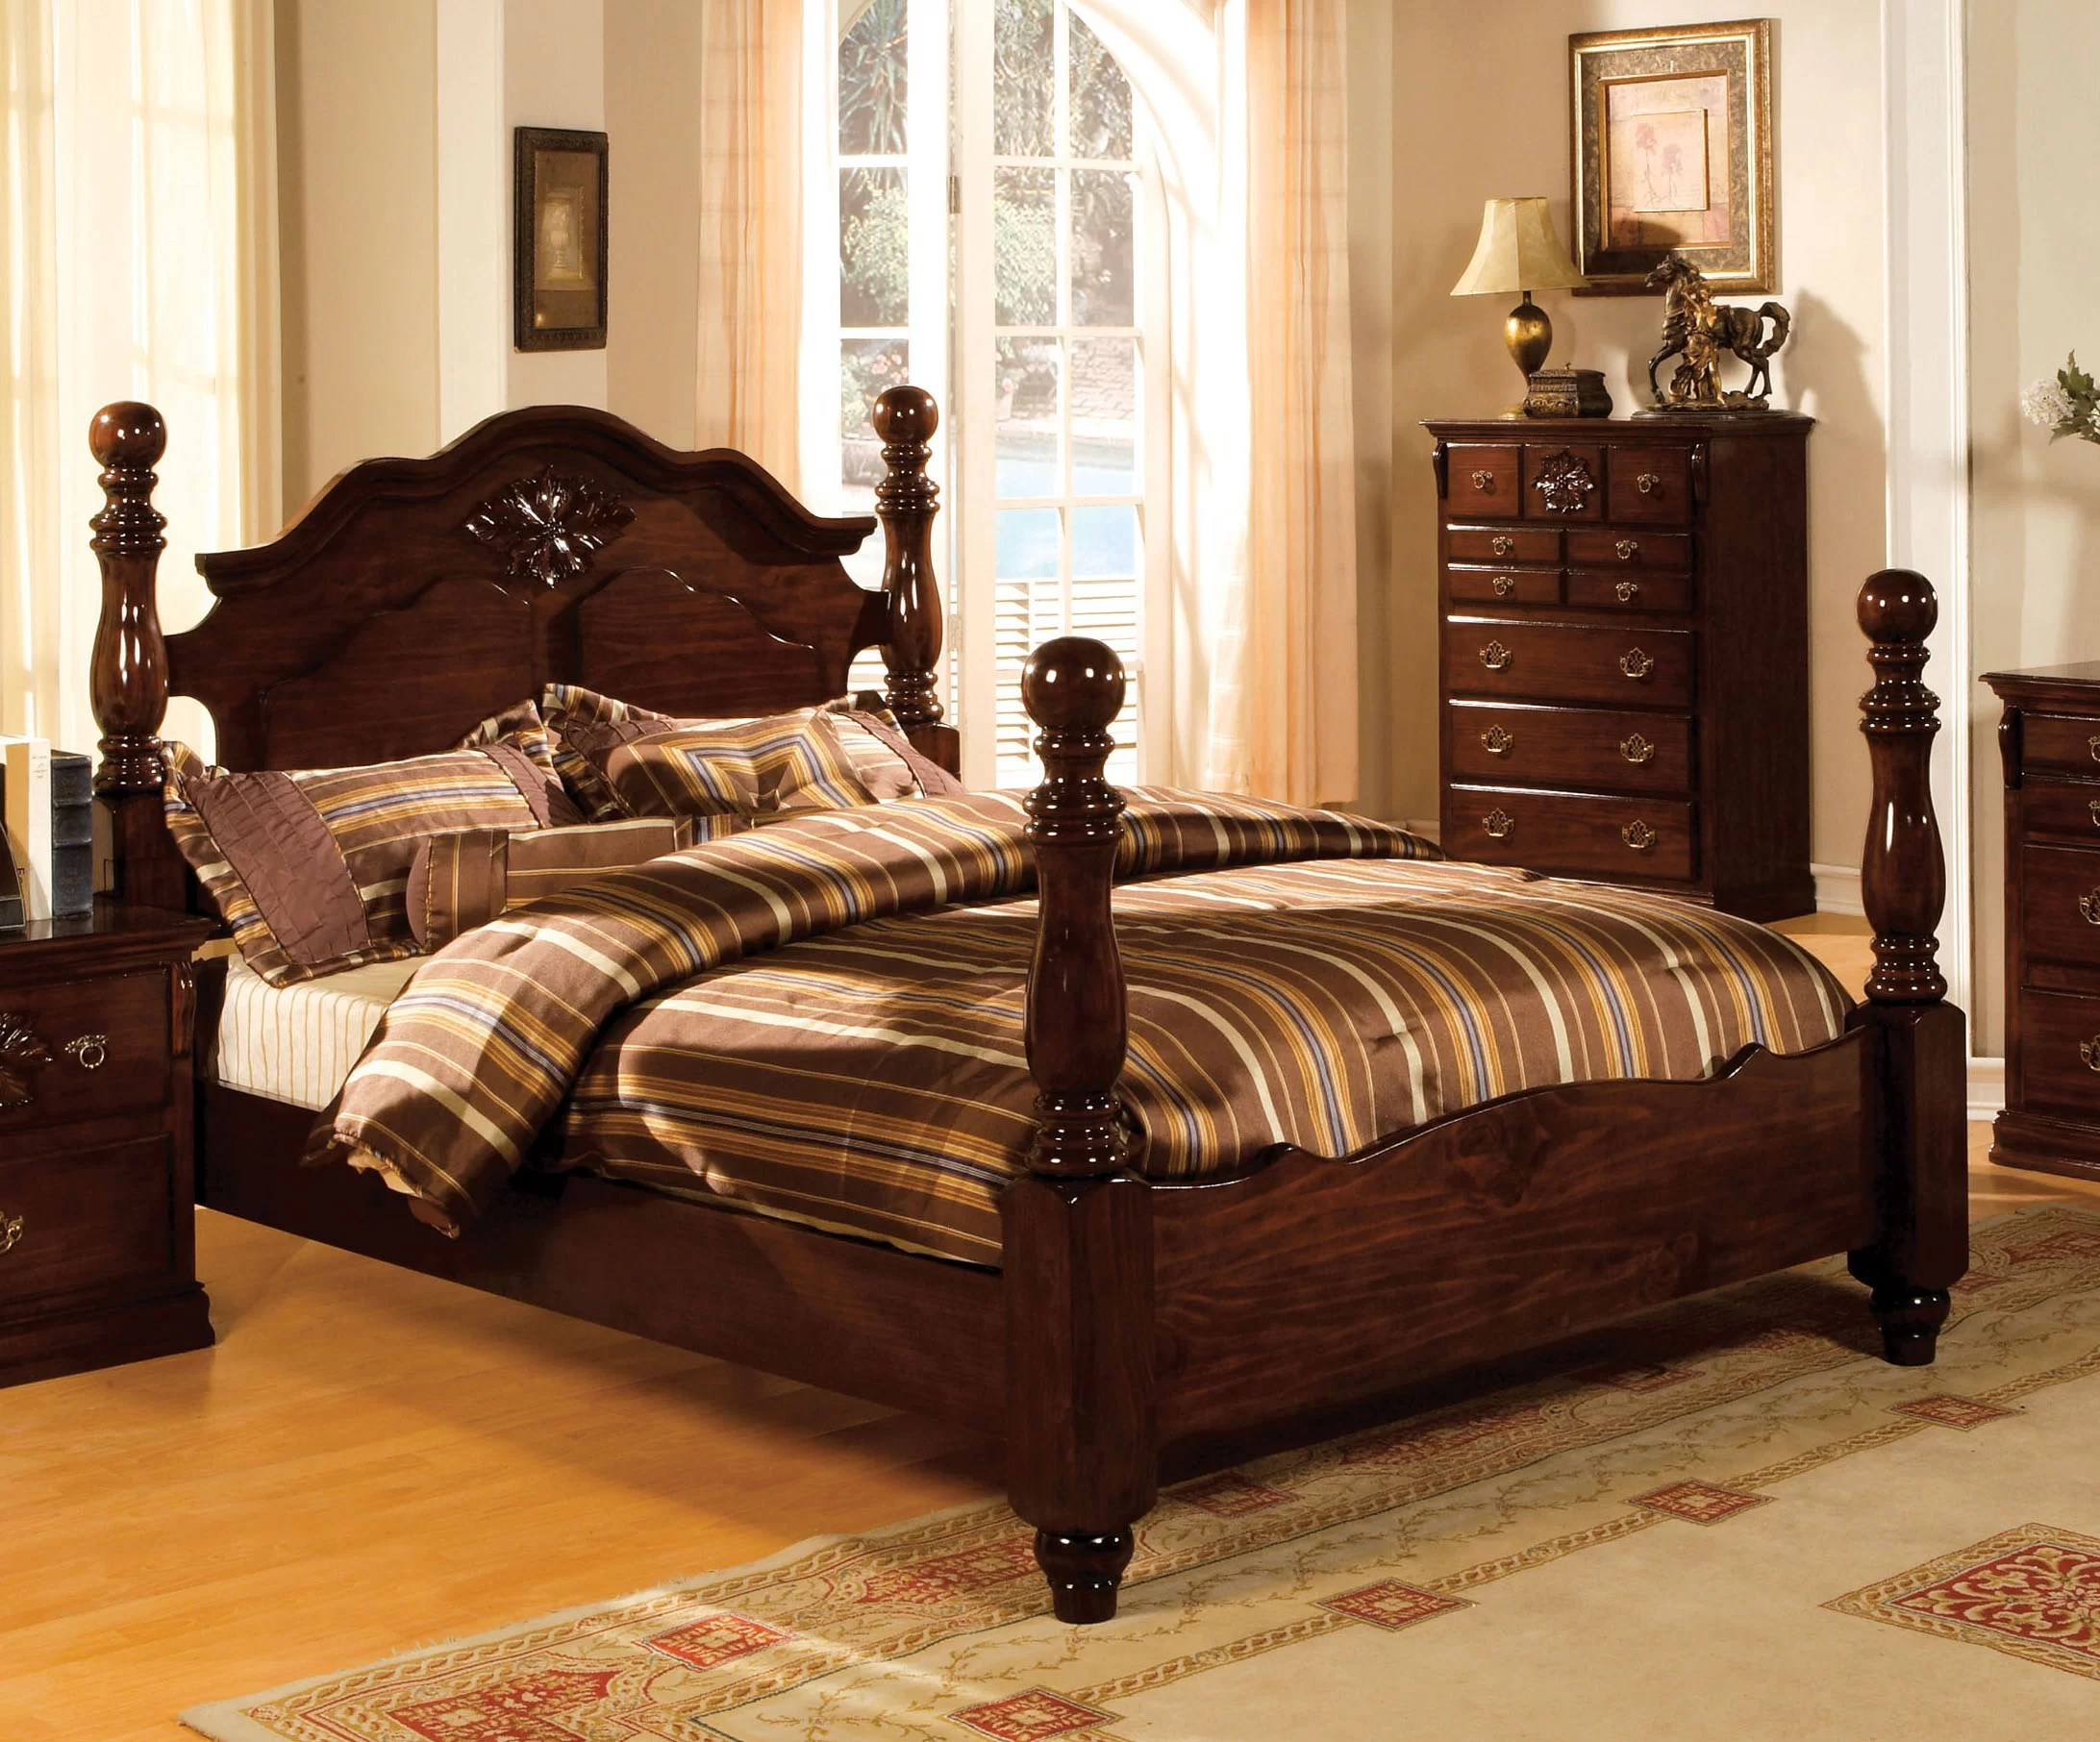 Darby Home Co Edyth Low Profile Four Poster Bed Reviews Wayfair